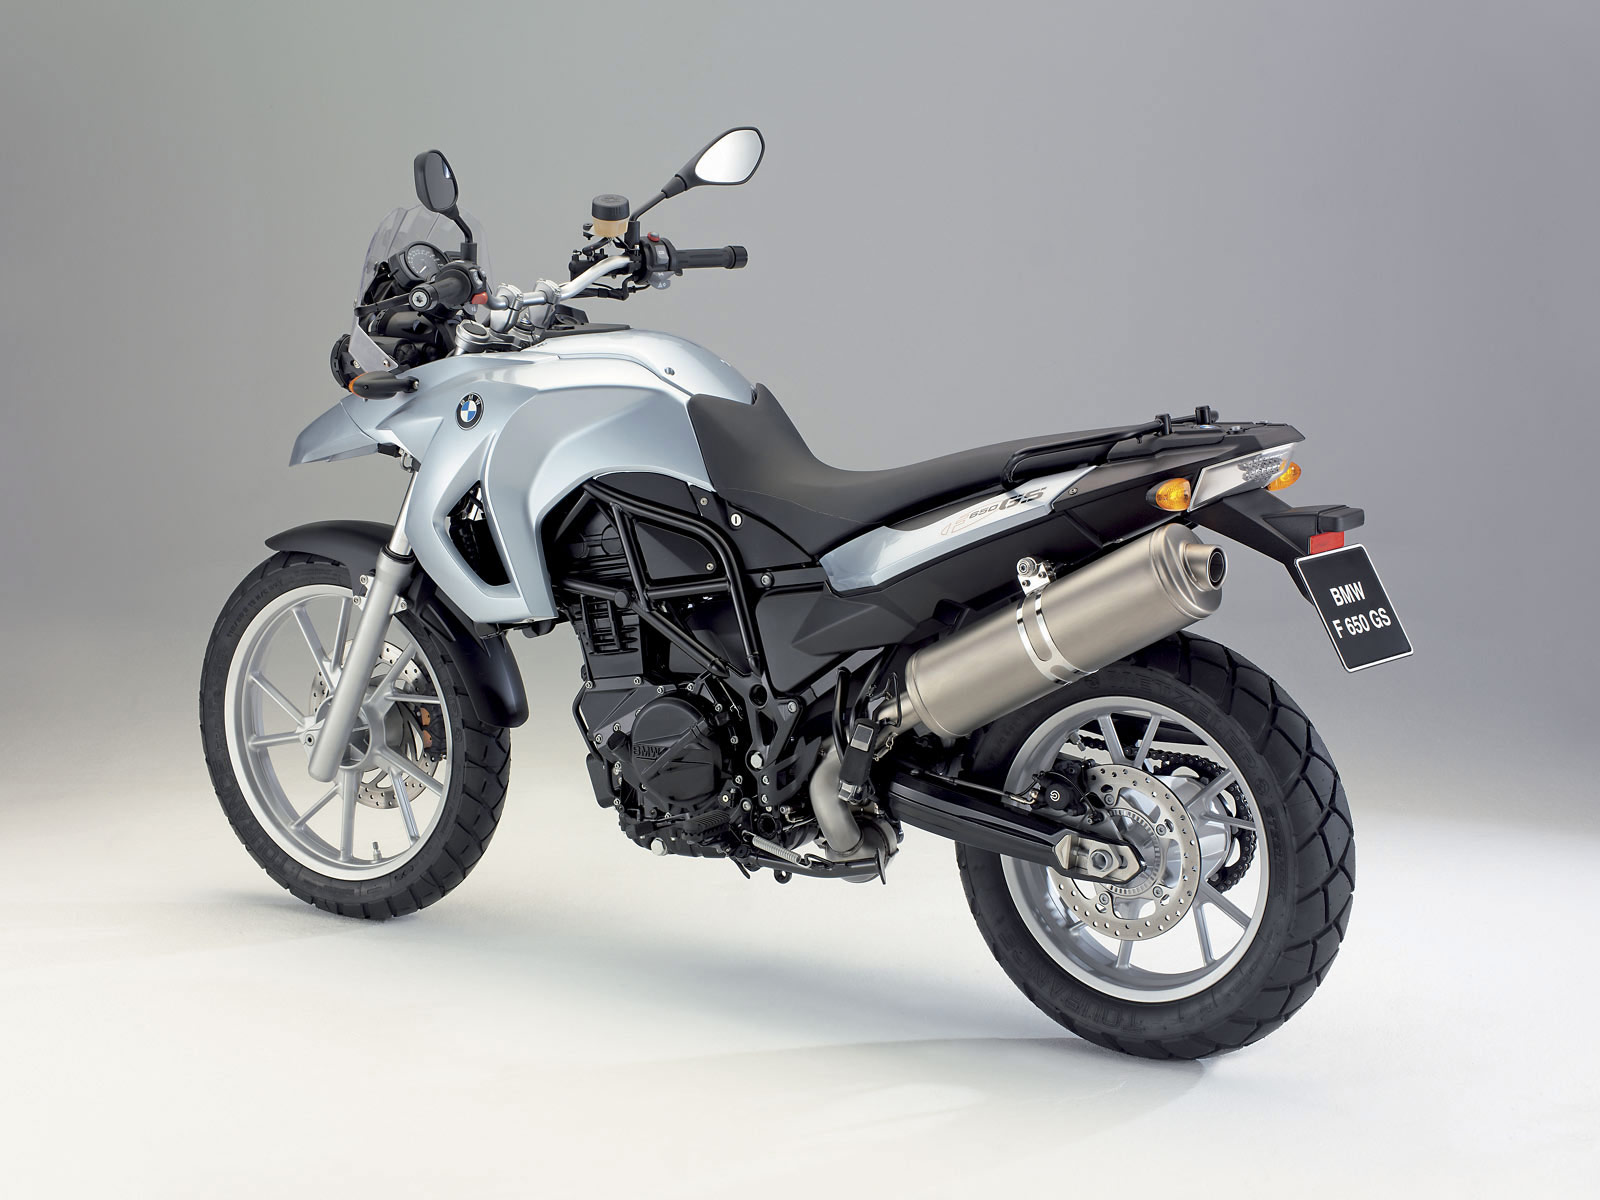 http://2.bp.blogspot.com/-YDumKbNJ_8g/TkdUvi1u1zI/AAAAAAAACTs/CdlIkgCpMK0/s1600/BMW-wallpapers_F650GS_2008_06.jpg